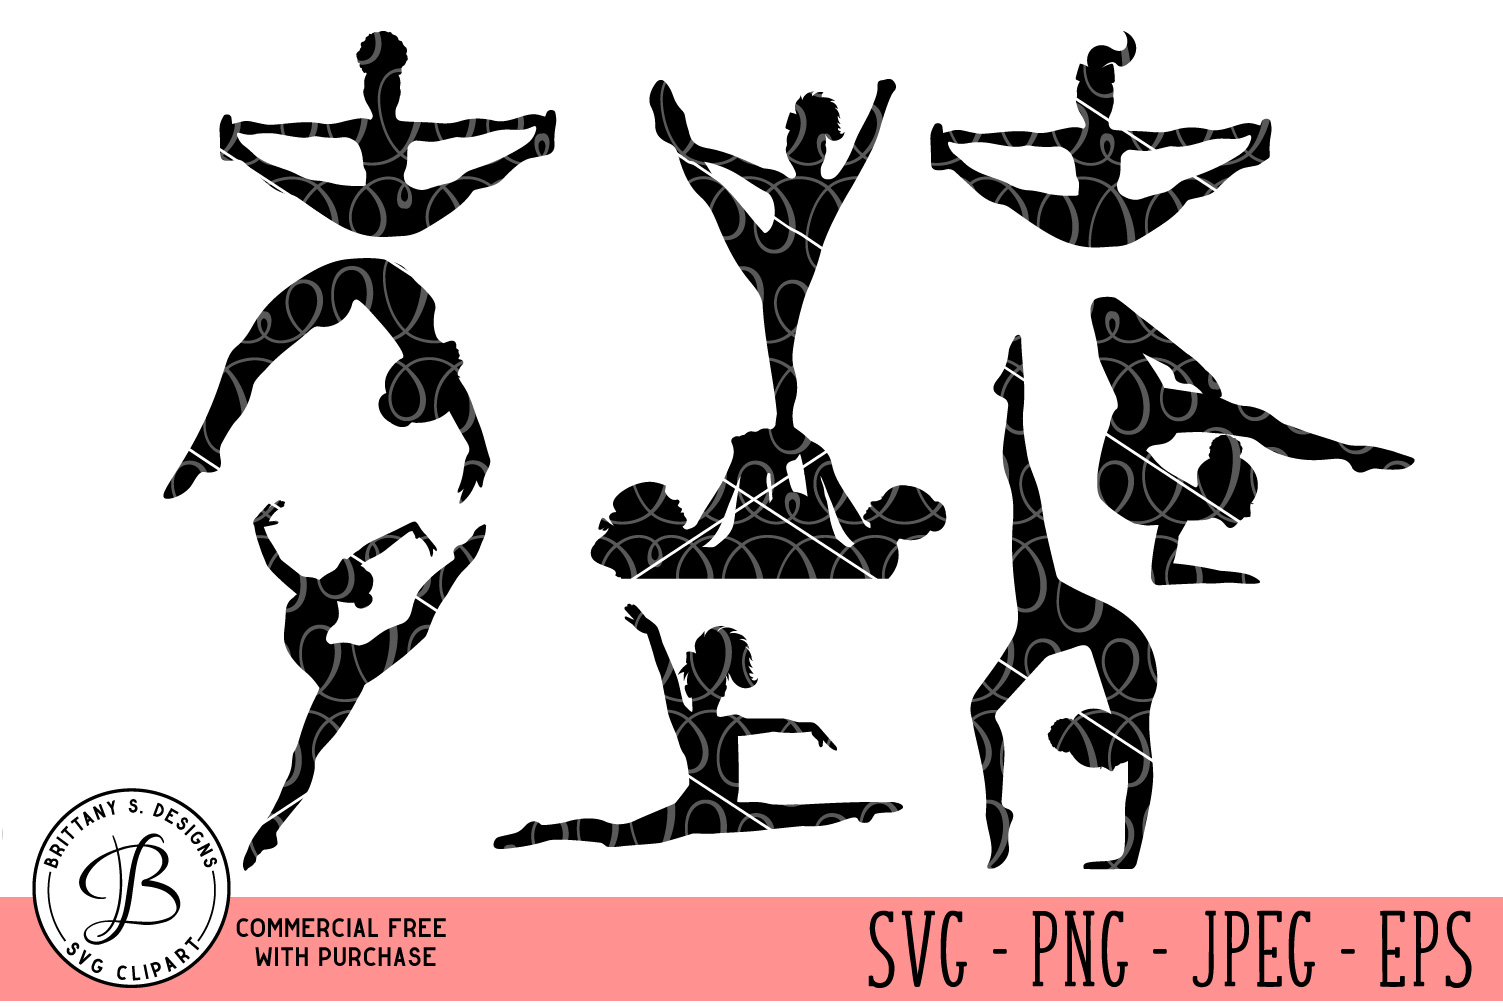 Cheer Silhouettes, Cheer Silhouette svg, Cheer svg files example image 1